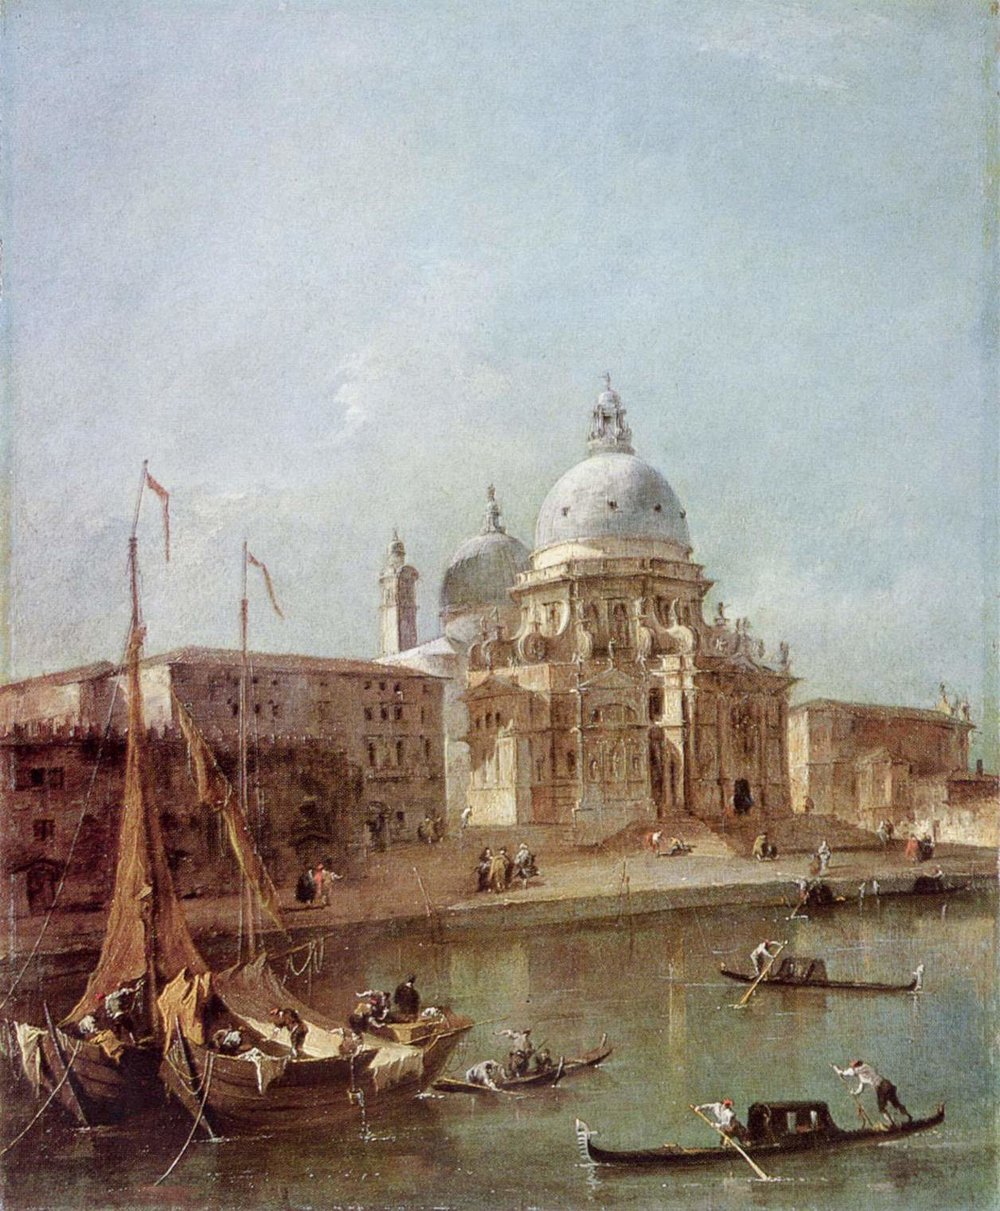 Santa Maria della Salute    by Francesco Guardi (c. 1770). Scottish National Gallery (Edinburgh, UK).